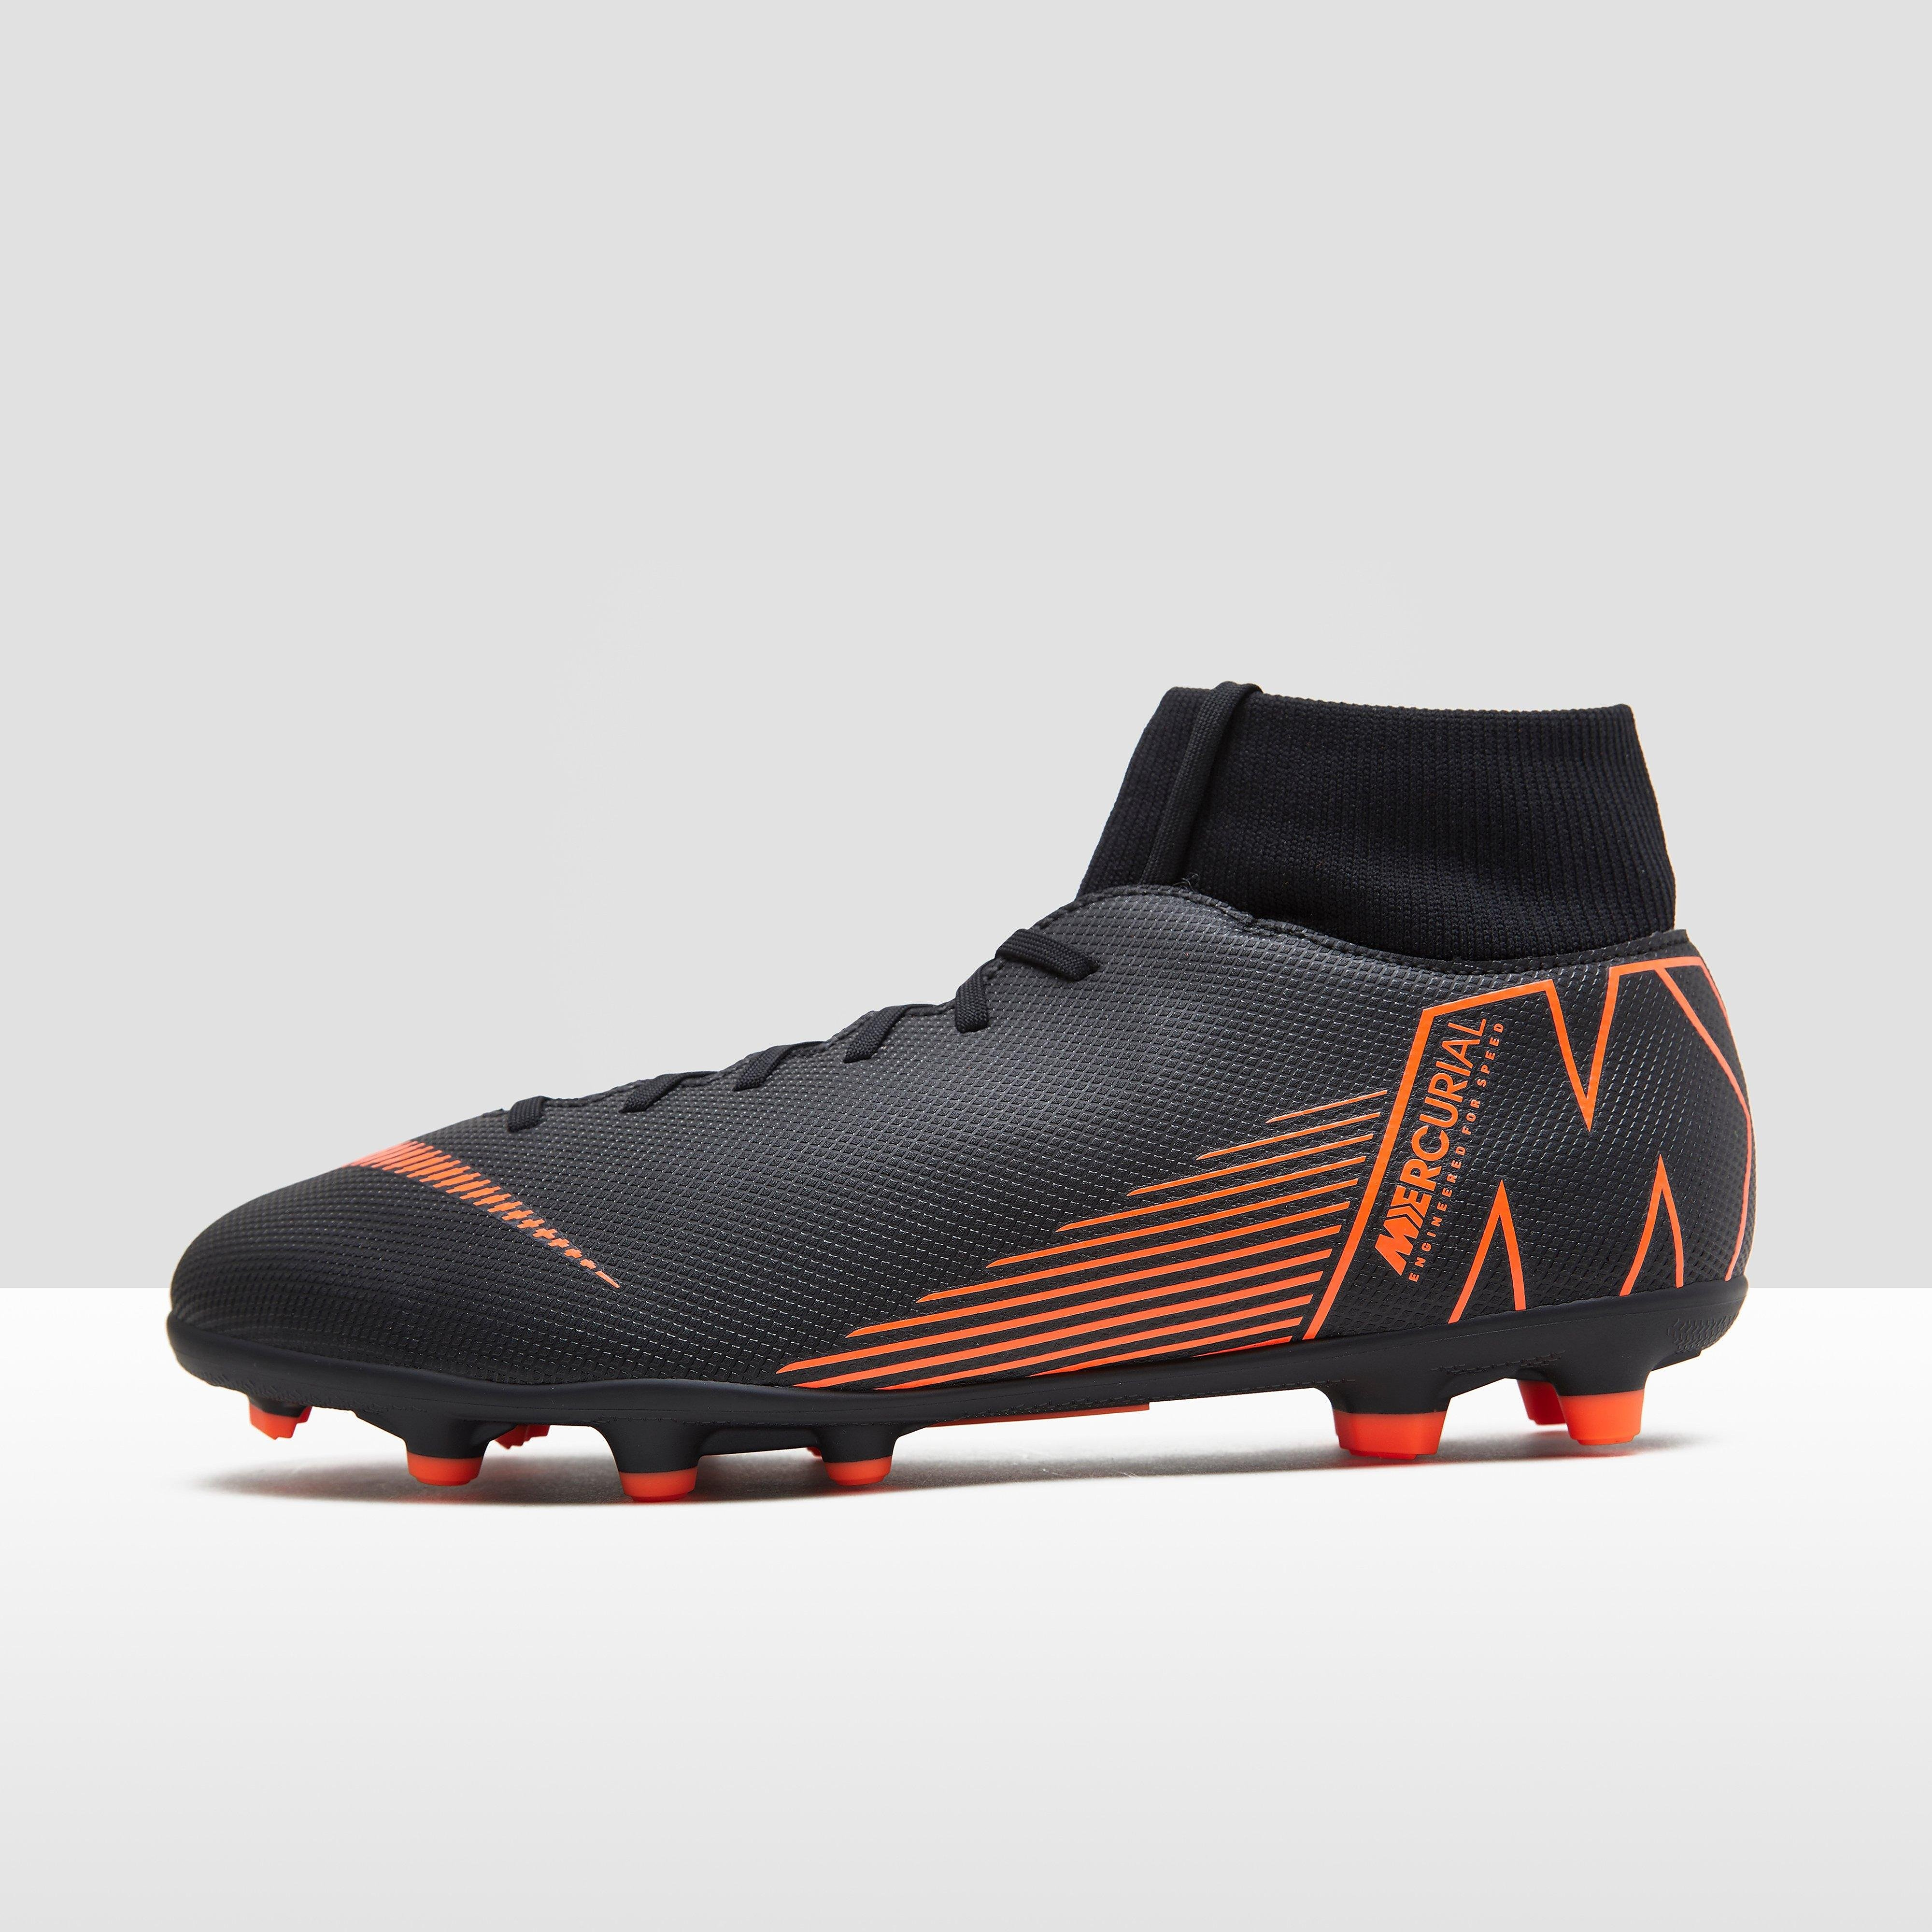 NIKE MERCURIAL SUPERFLY 6 CLUB MG VOETBALSCHOENEN ZWART HEREN